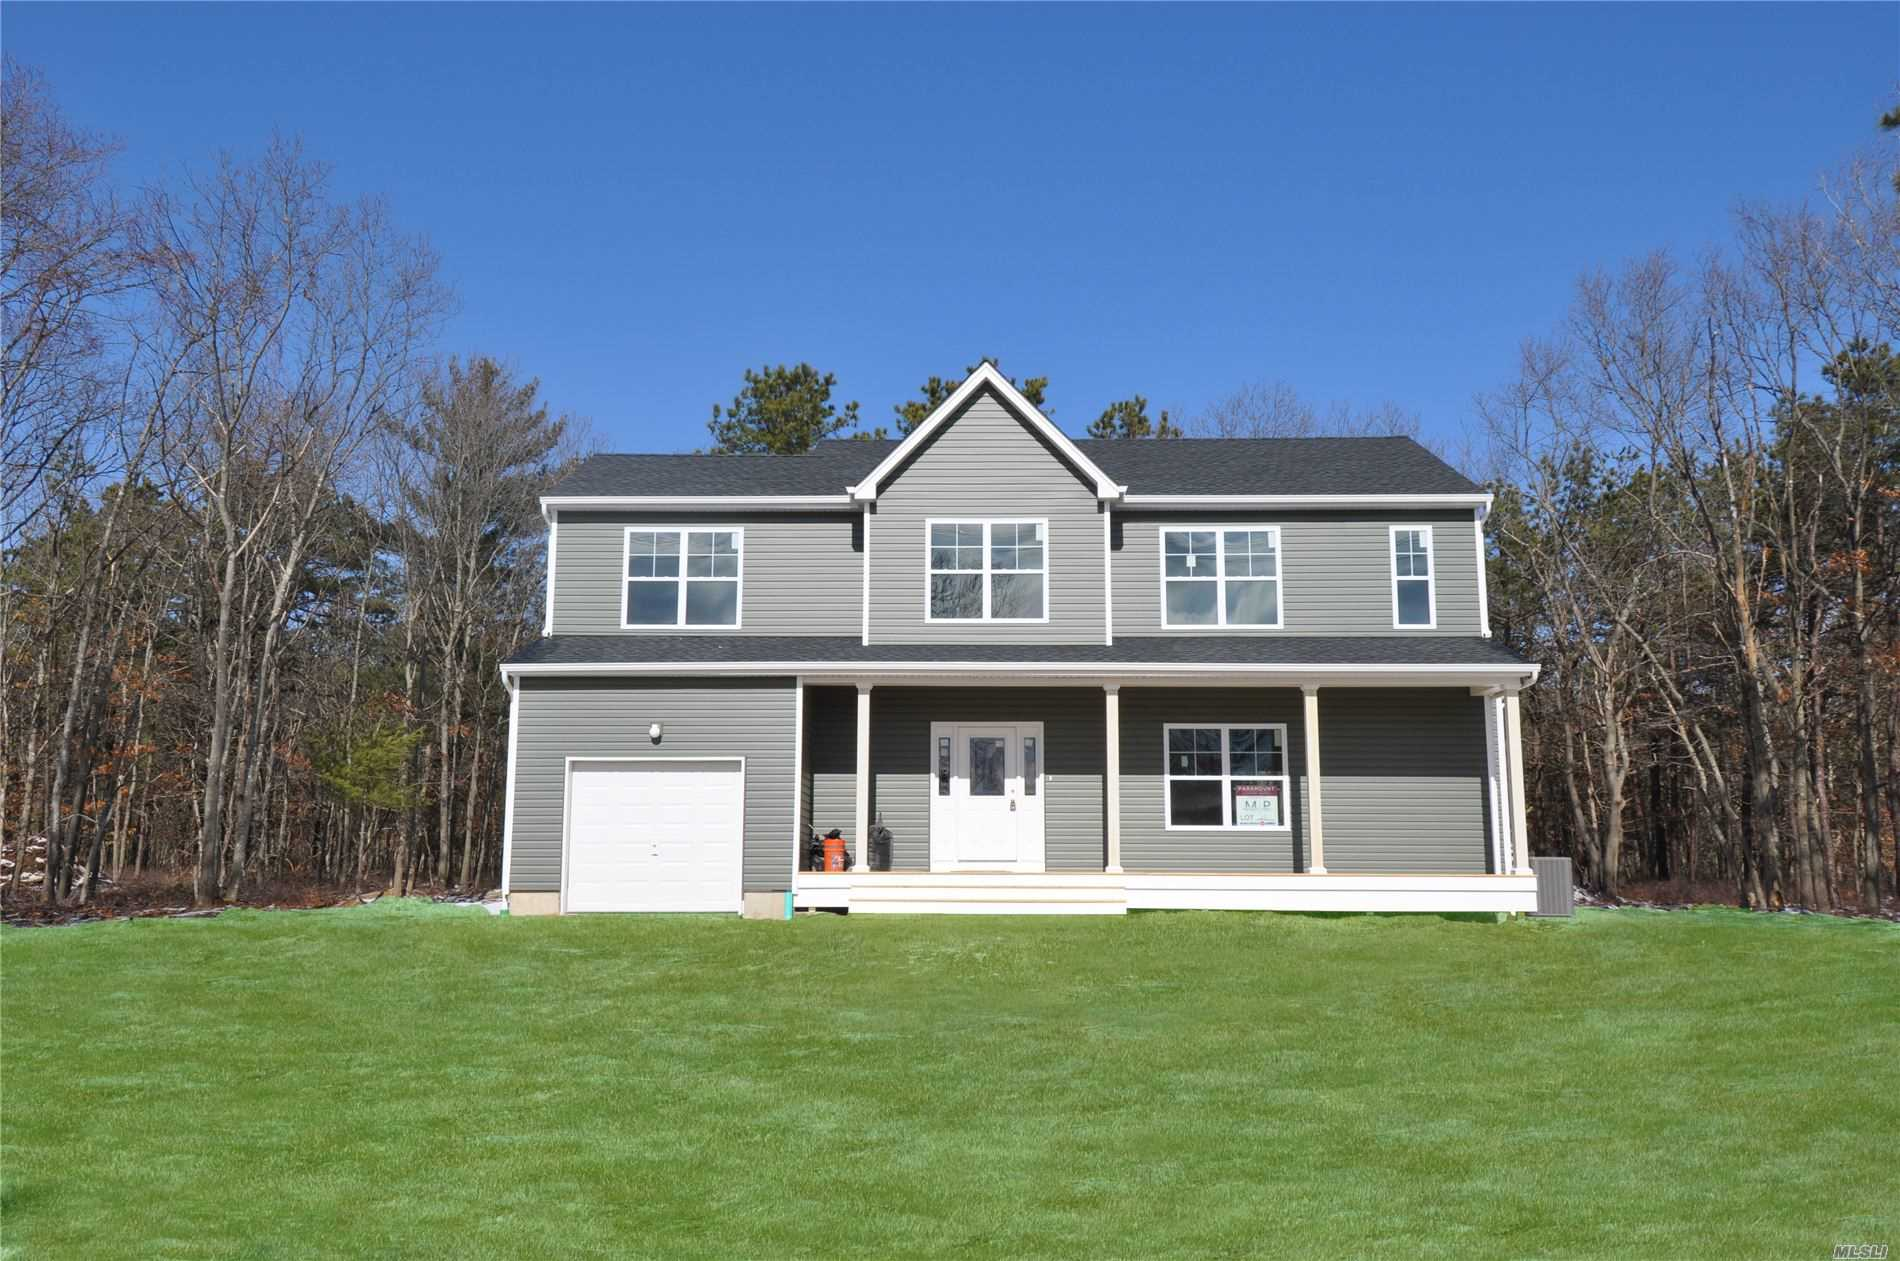 Photo of home for sale at 1503 Fire Ave, Medford NY